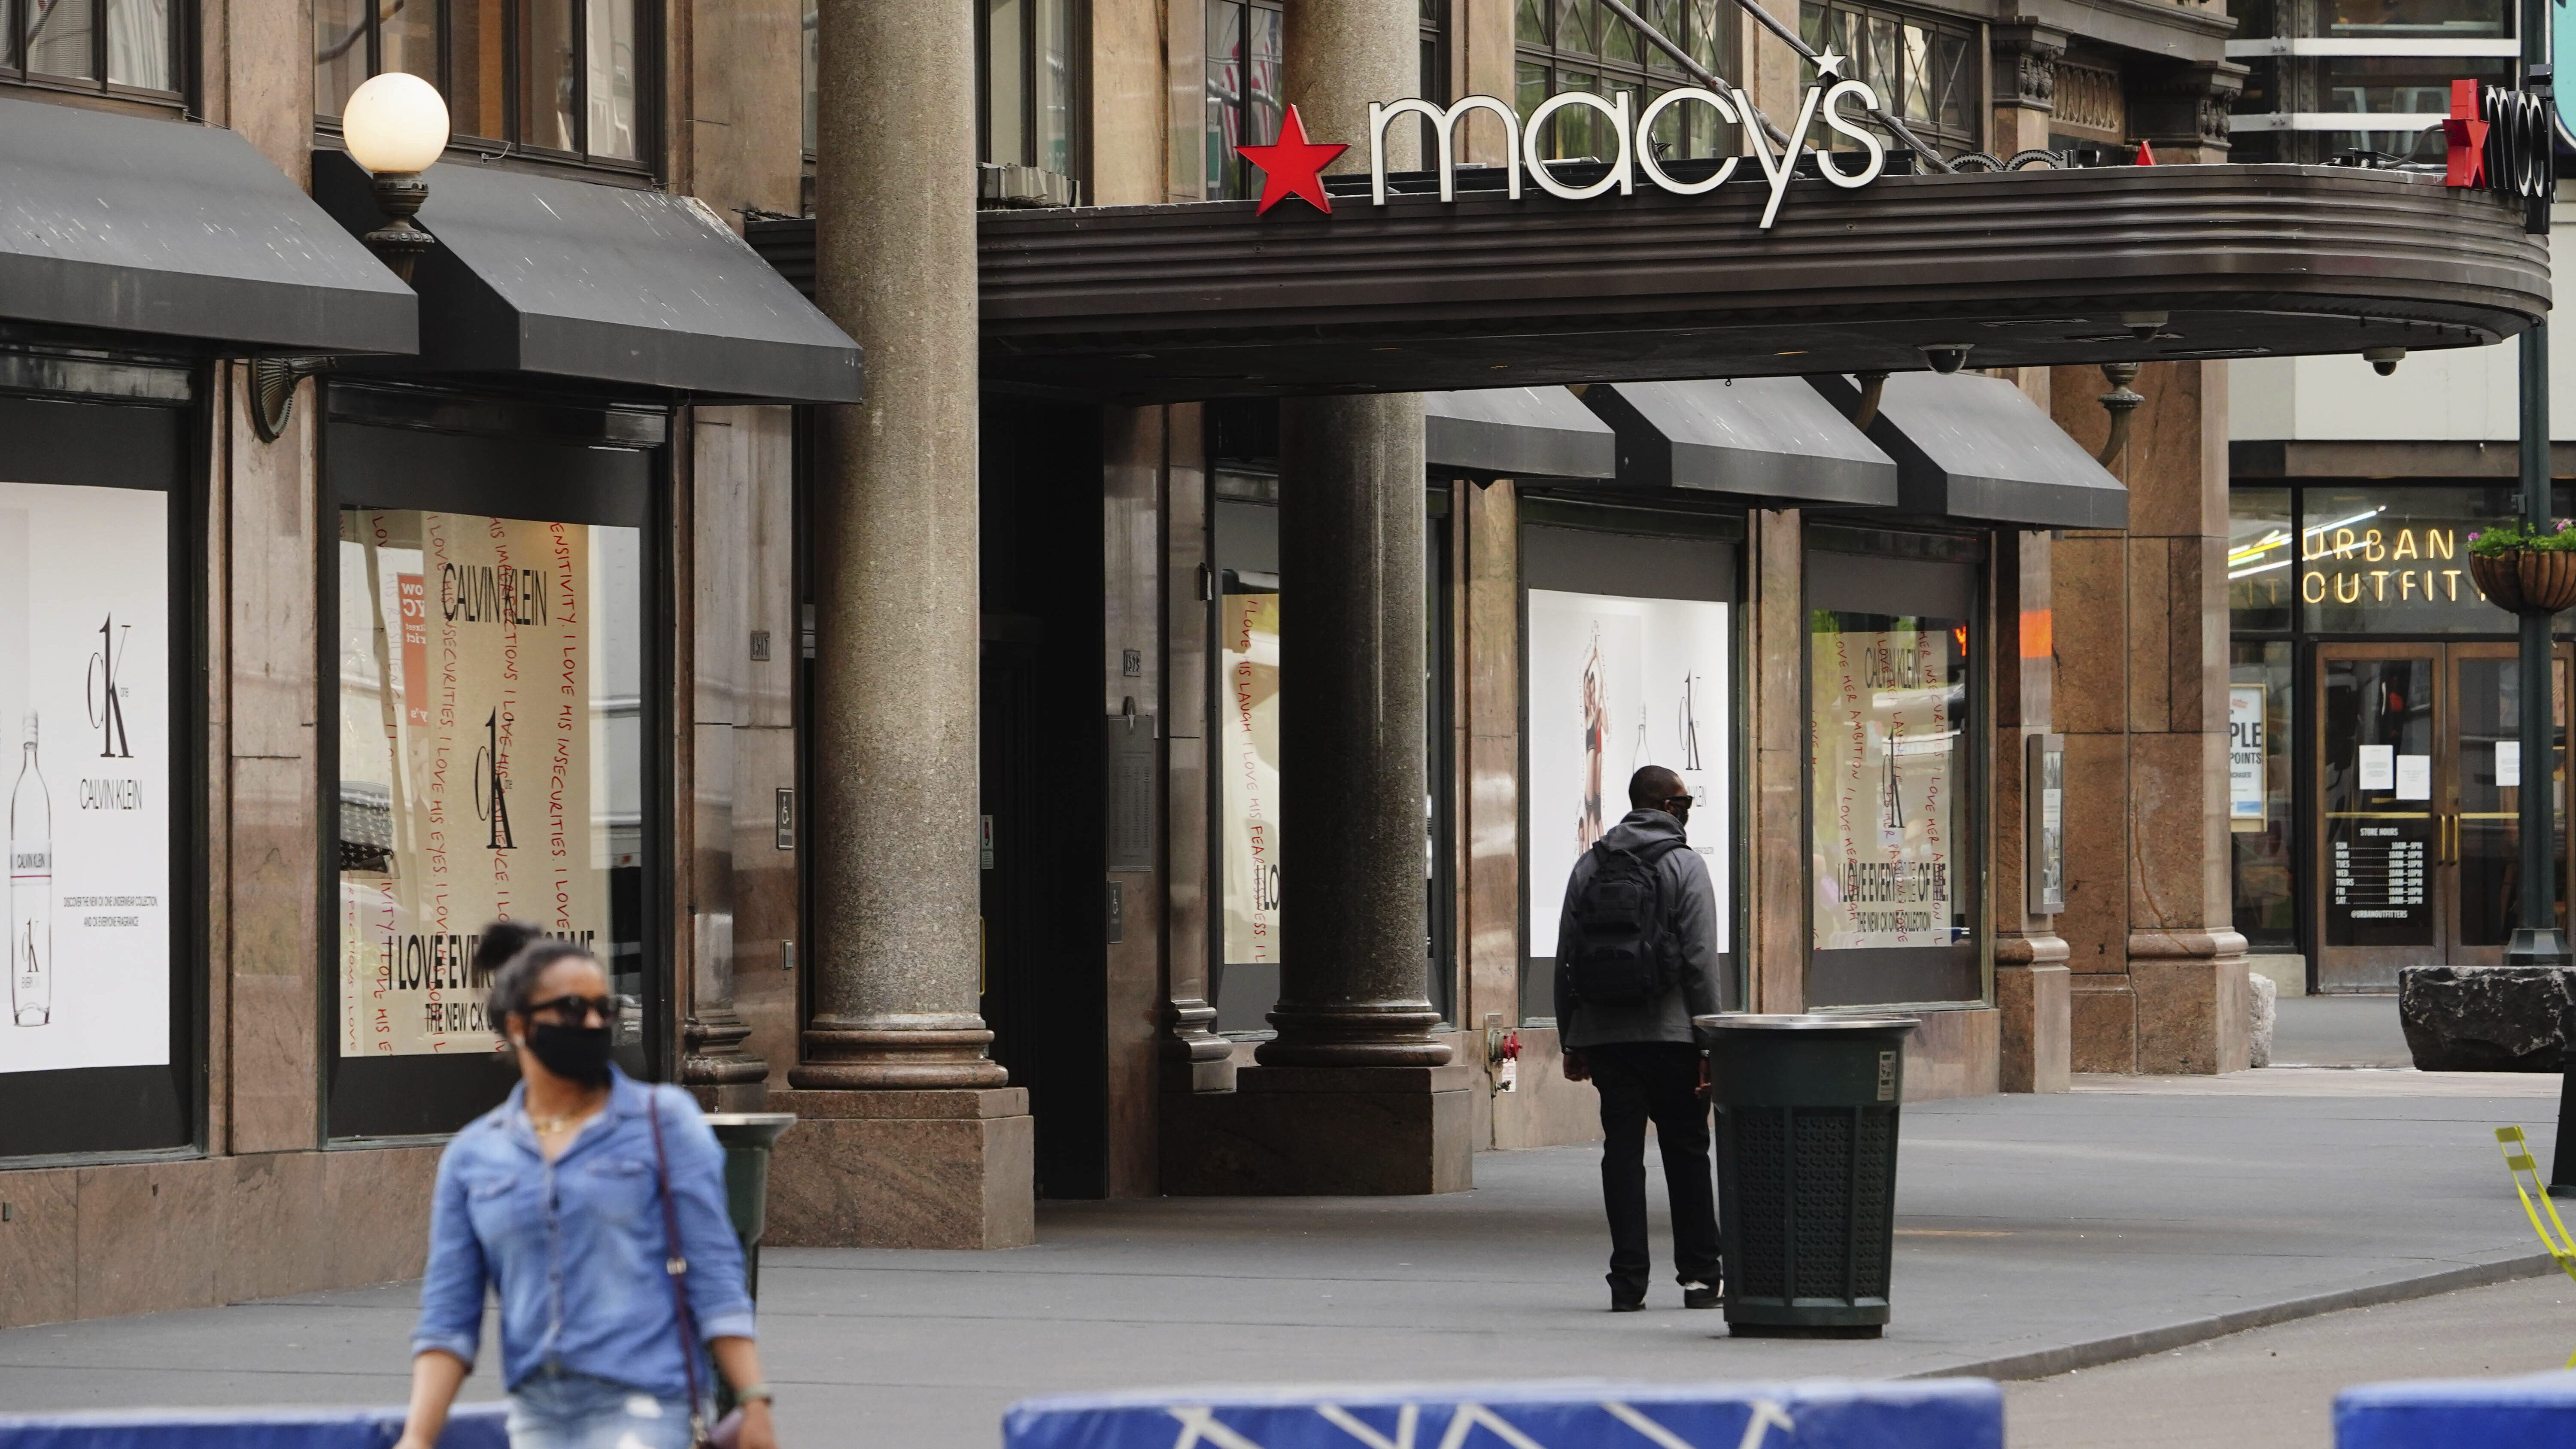 A view of Macy's Department Store during the coronavirus pandemic on May 18, 2020 in New York City